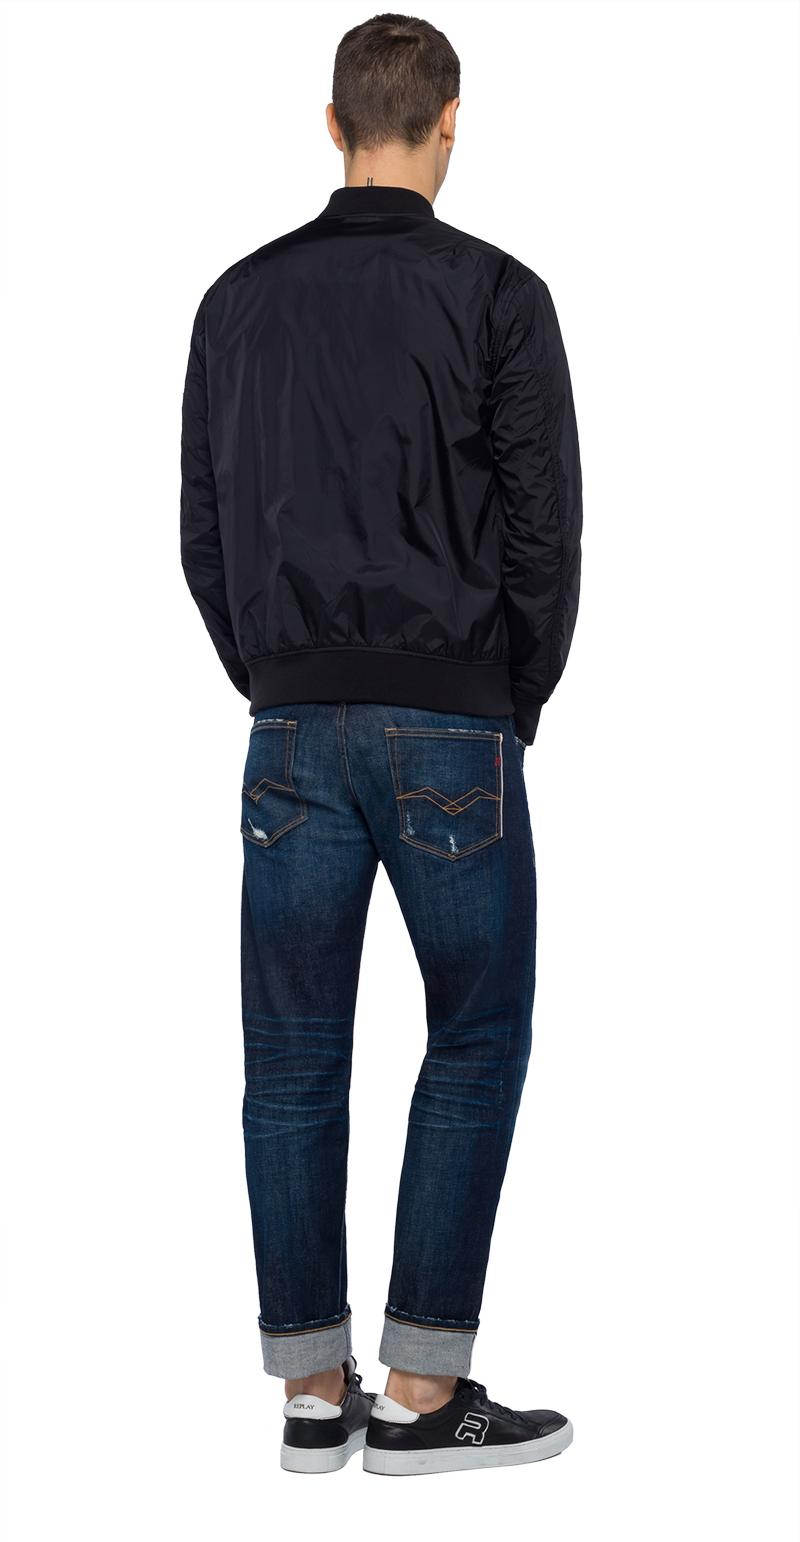 Replay Jeans - Technical bomber jacket with zipper - 3